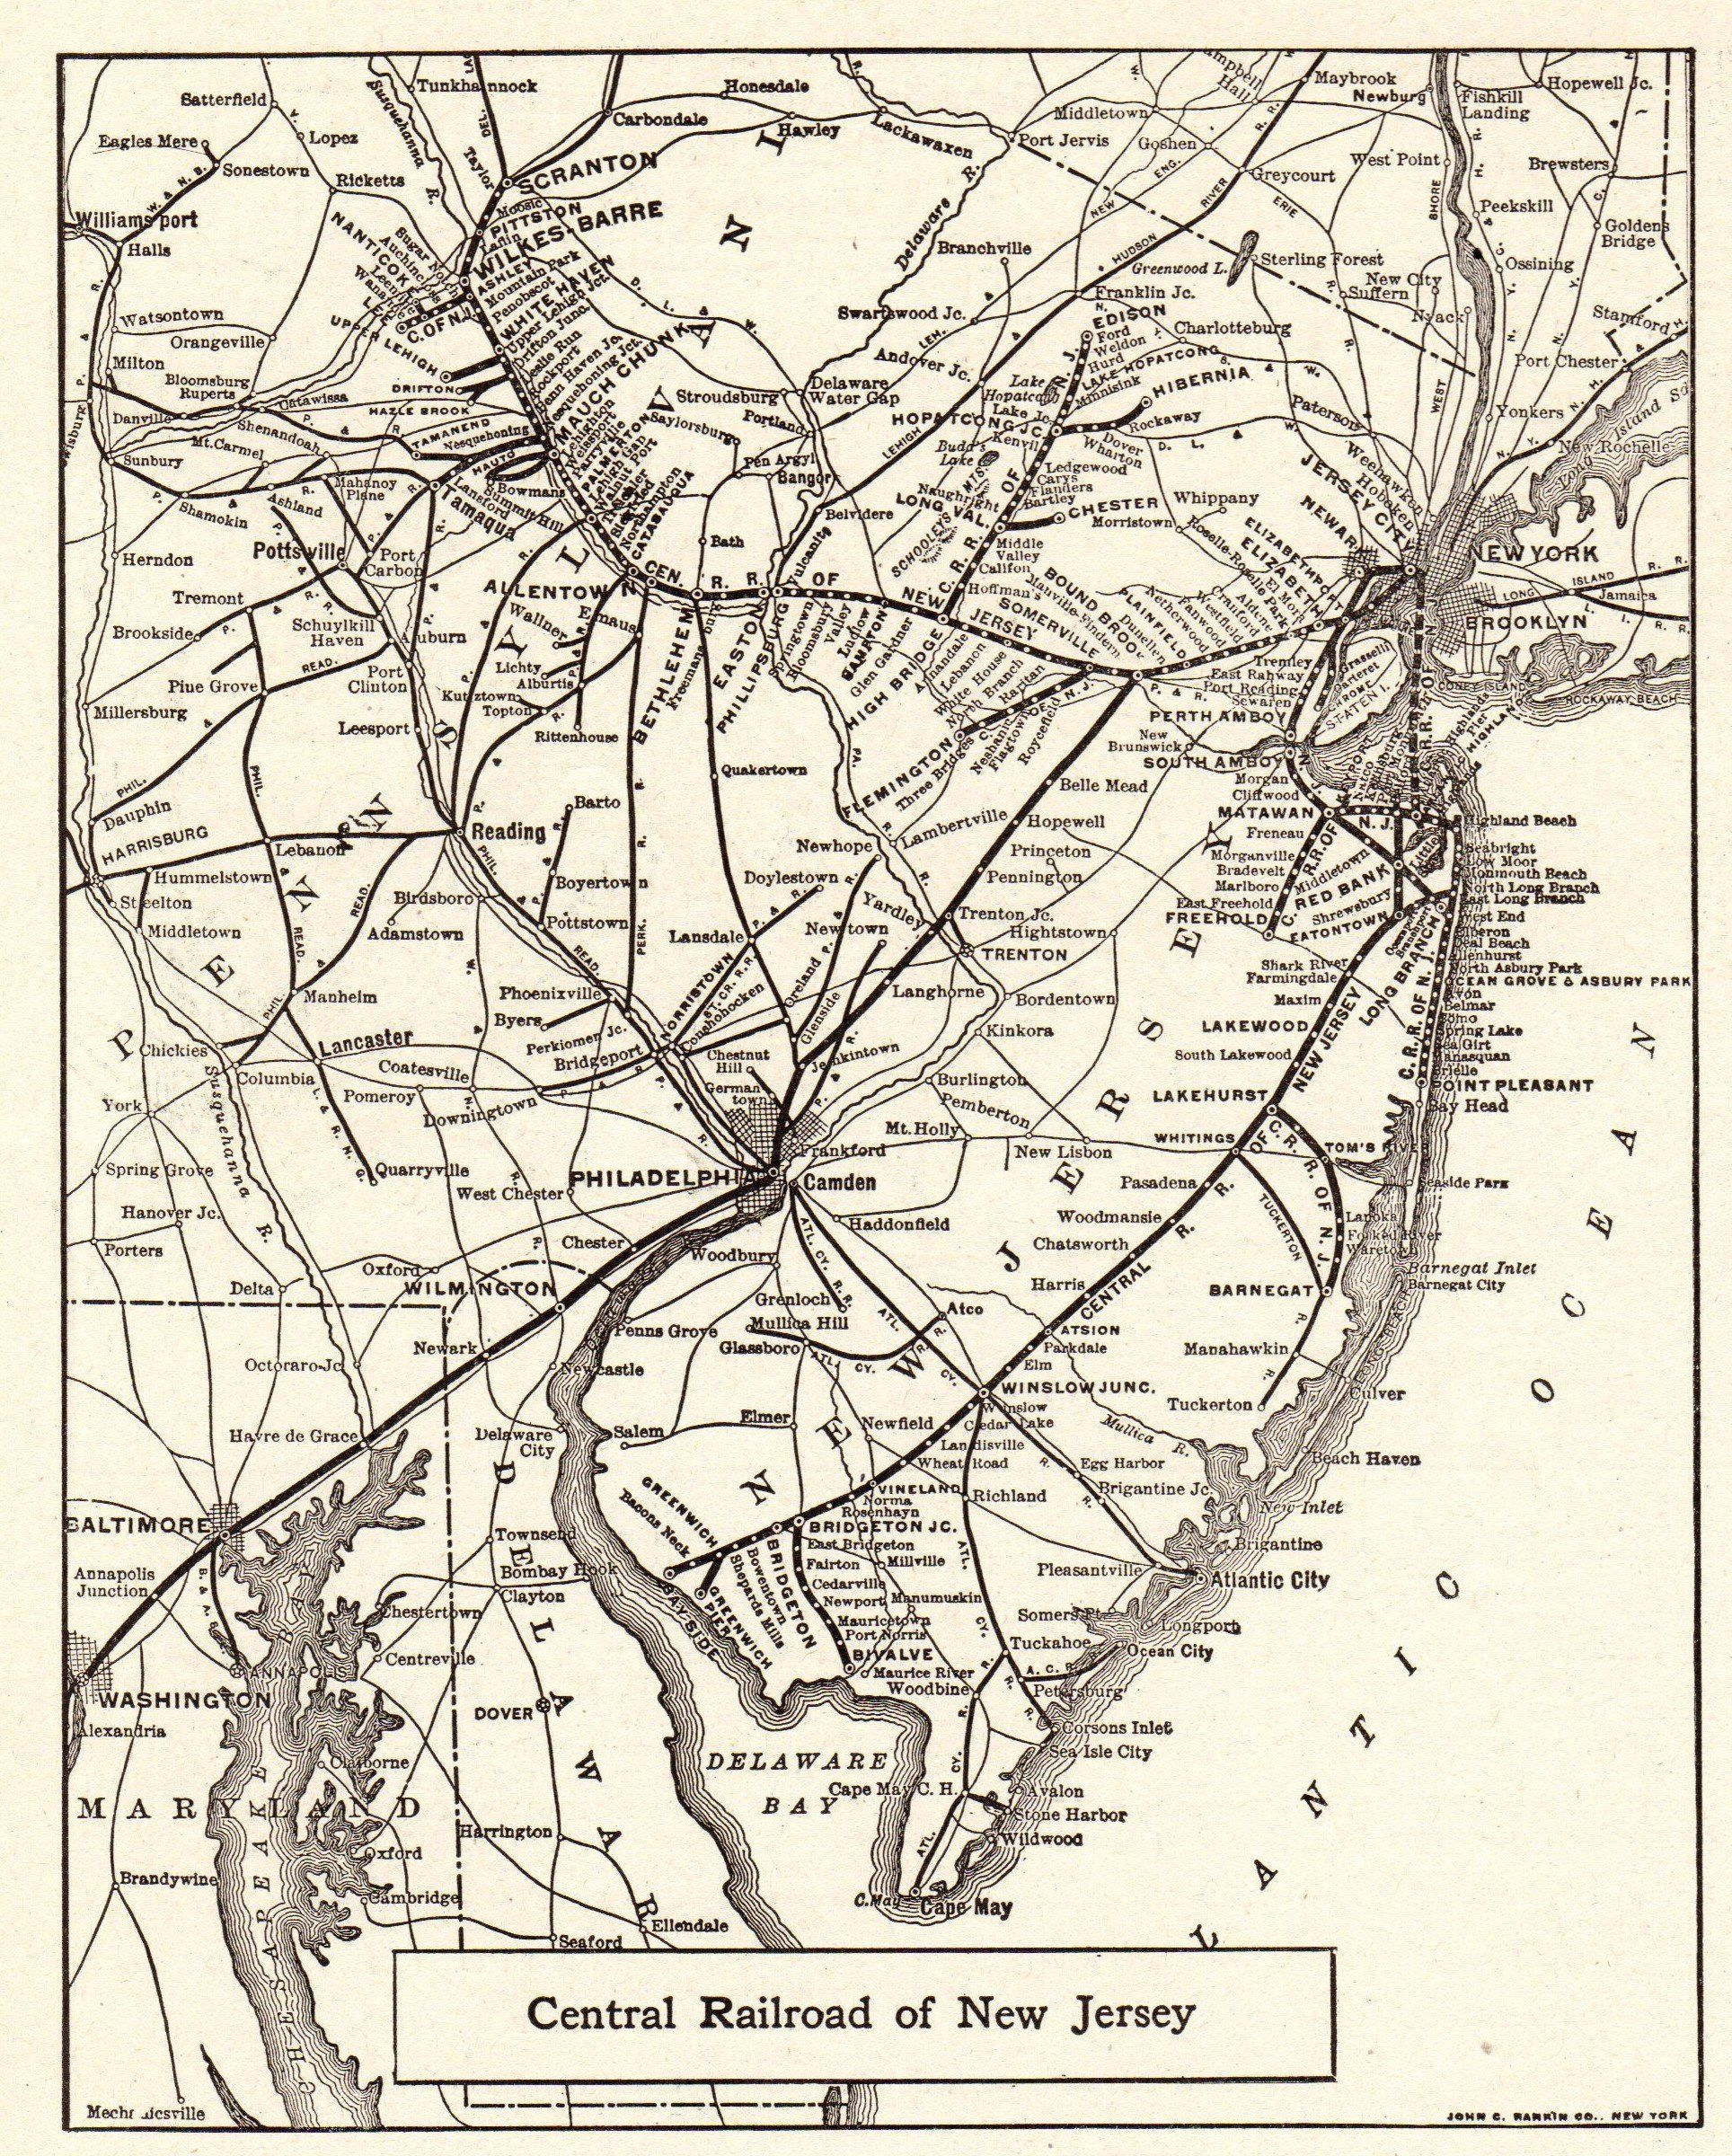 Central New Jersey Map 1924 Antique CENTRAL RAILROAD of New Jersey Map Black and White